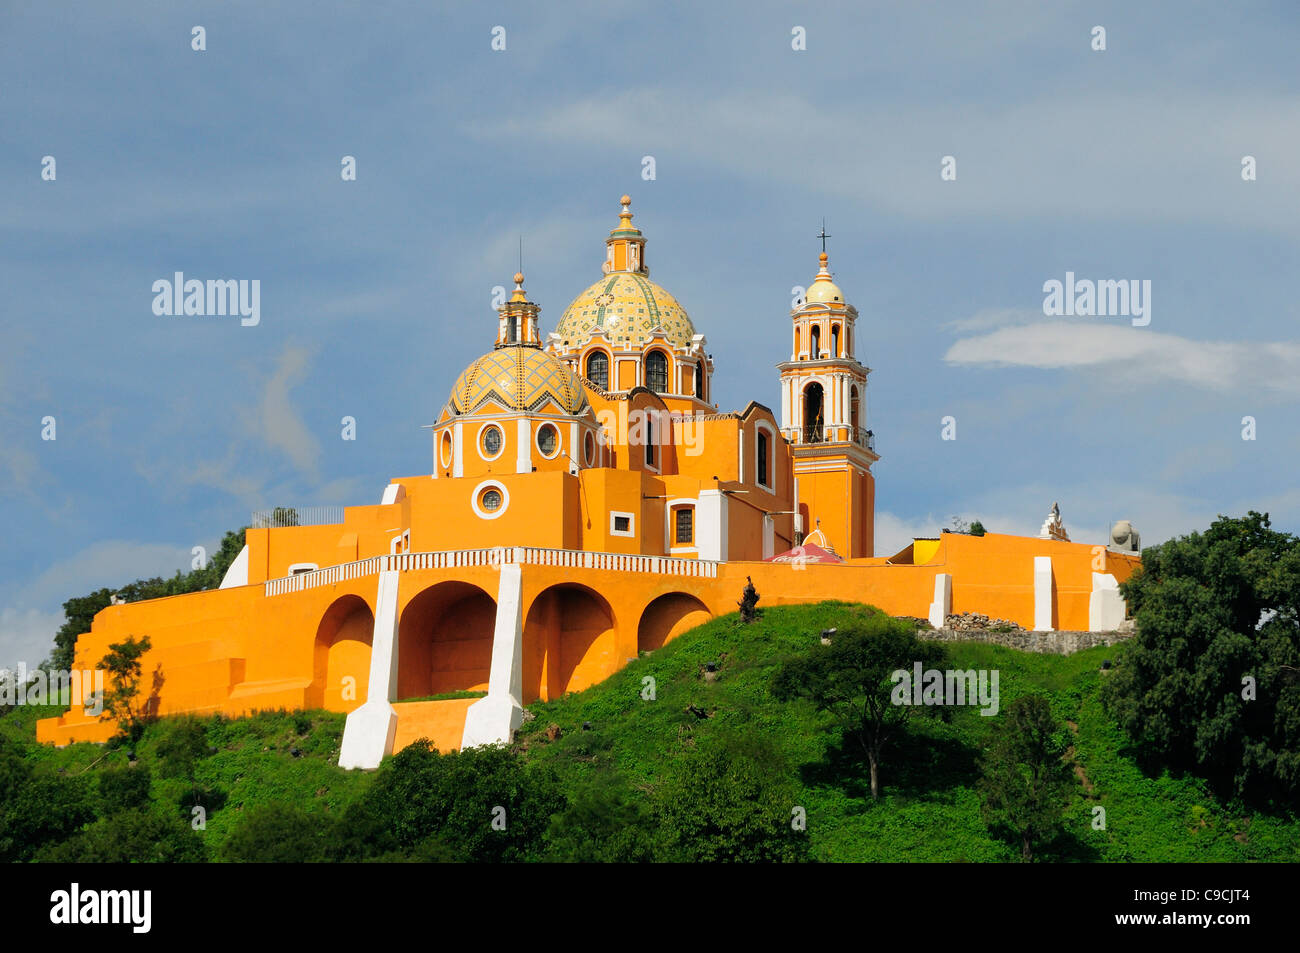 Mexico, Puebla, Cholula, Church of Neustra Senor de los Remedios or Our Lady of Remedios on wooded hillside above - Stock Image